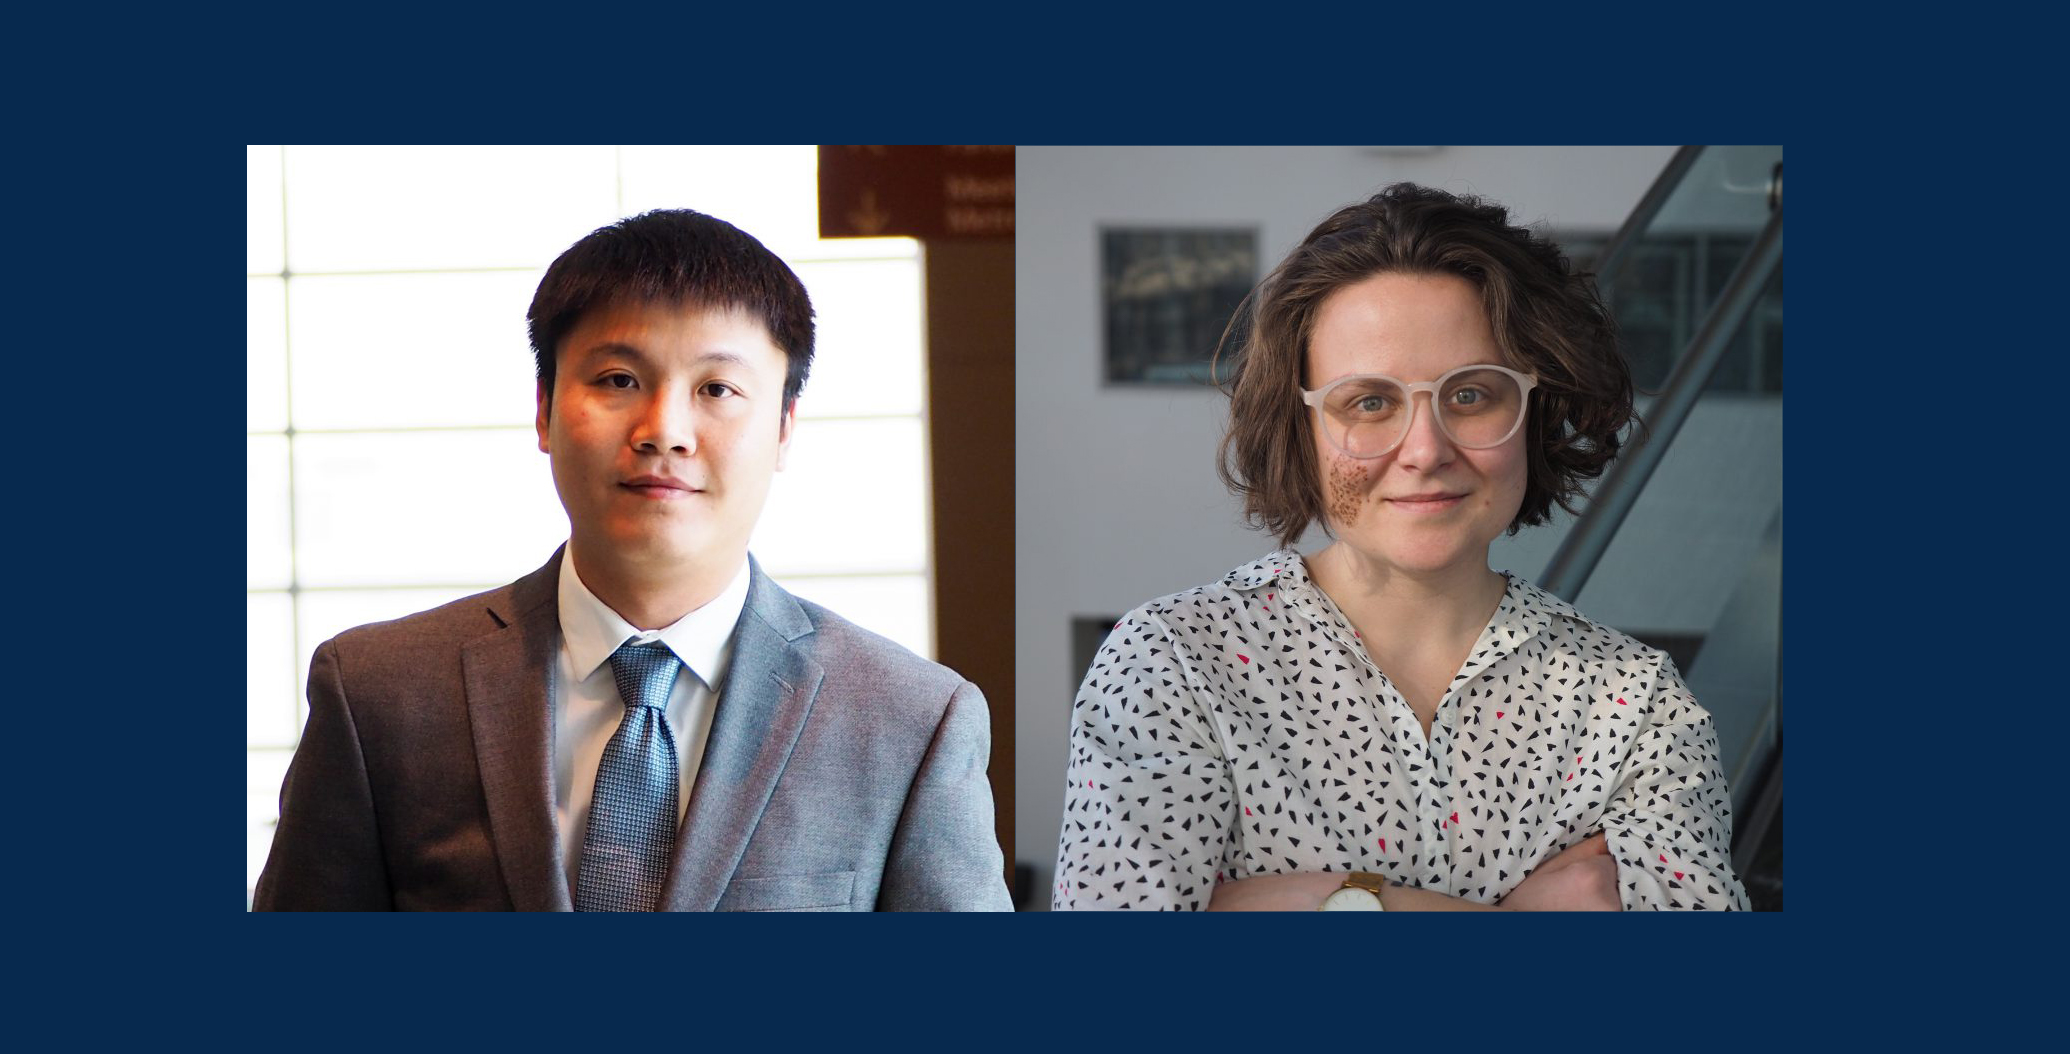 Congratulations to Our Ph.D. Students, Kanit Hantanasirisakul and Asia Sarycheva, for Successfully Defending Their Ph.D. Theses